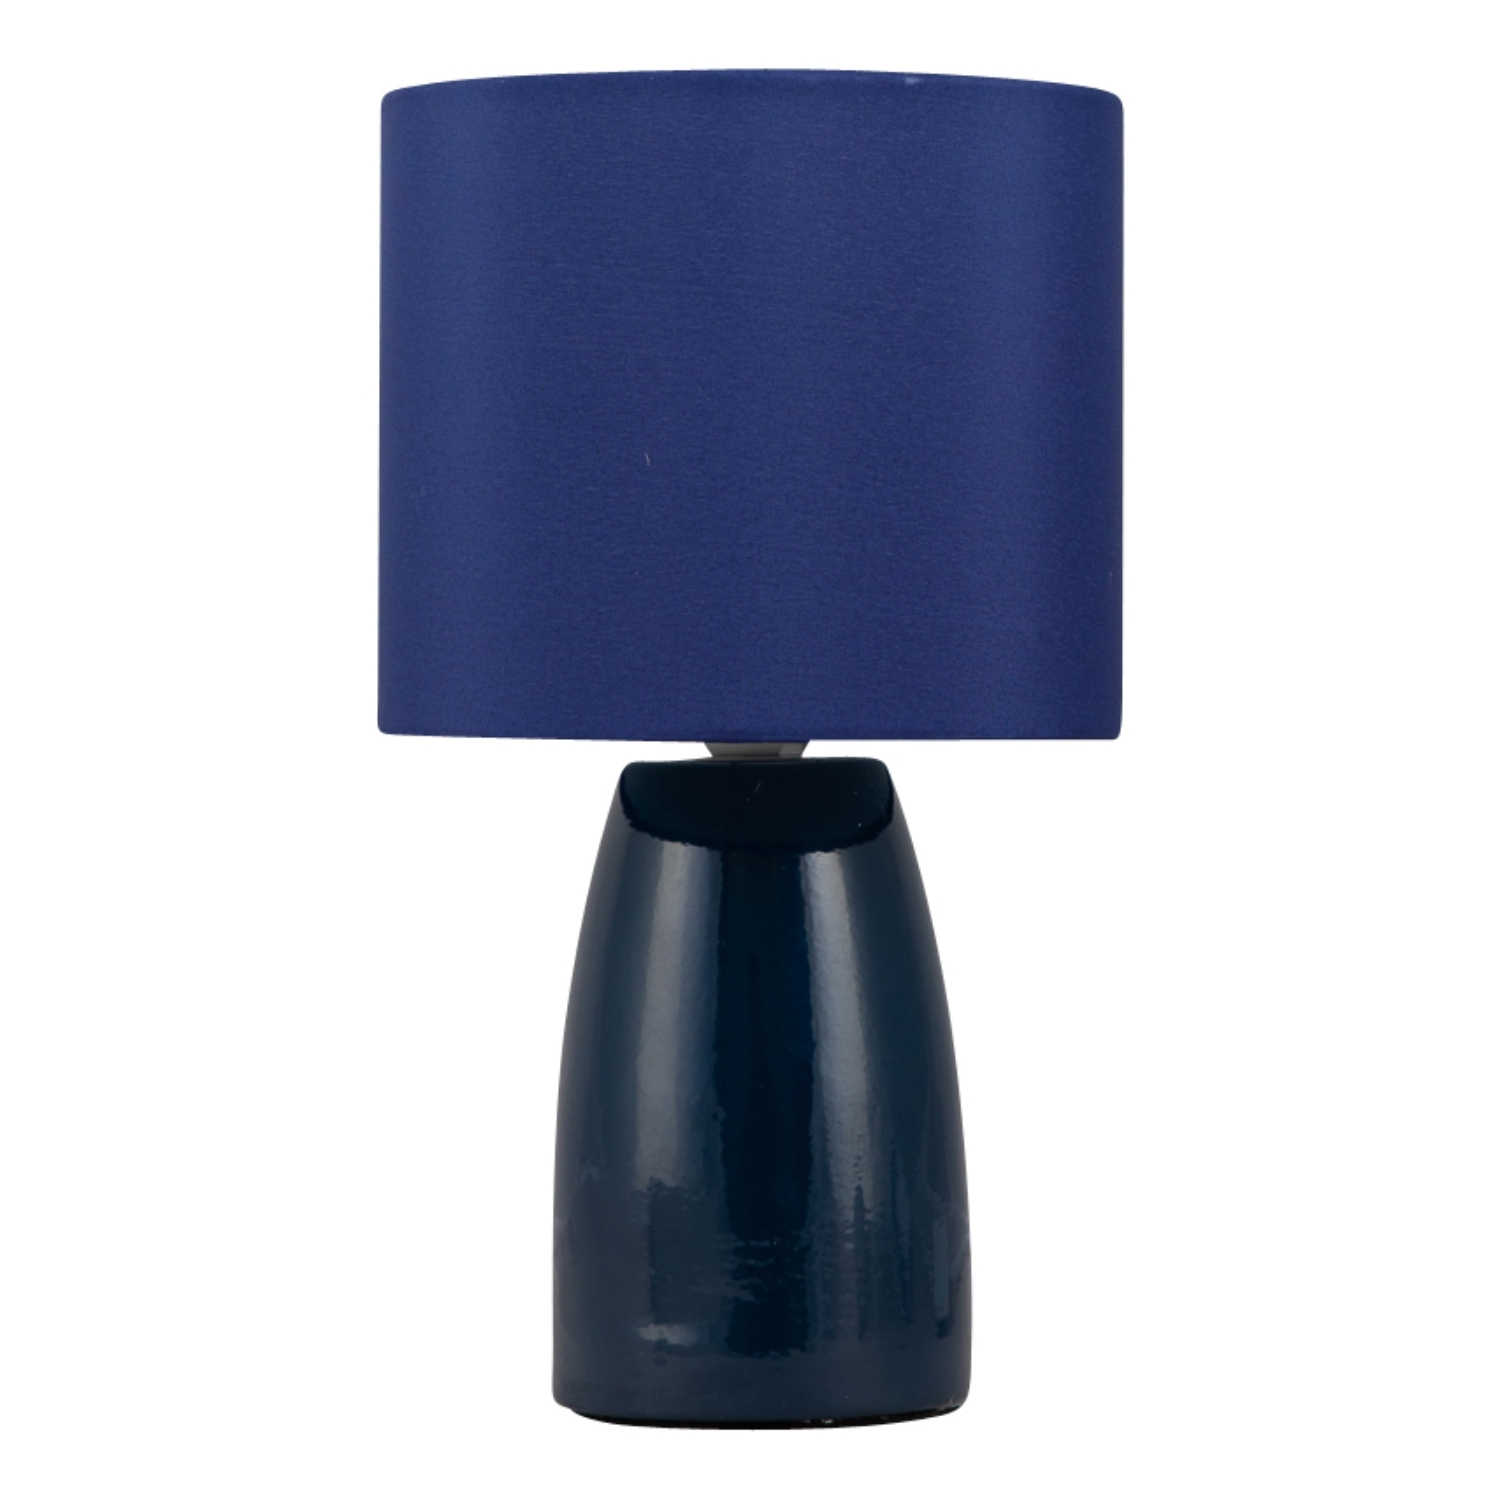 Ceramic 25cm Table Lamp Bedside Lights Grey Ivory Blue or Ochrewith Shade